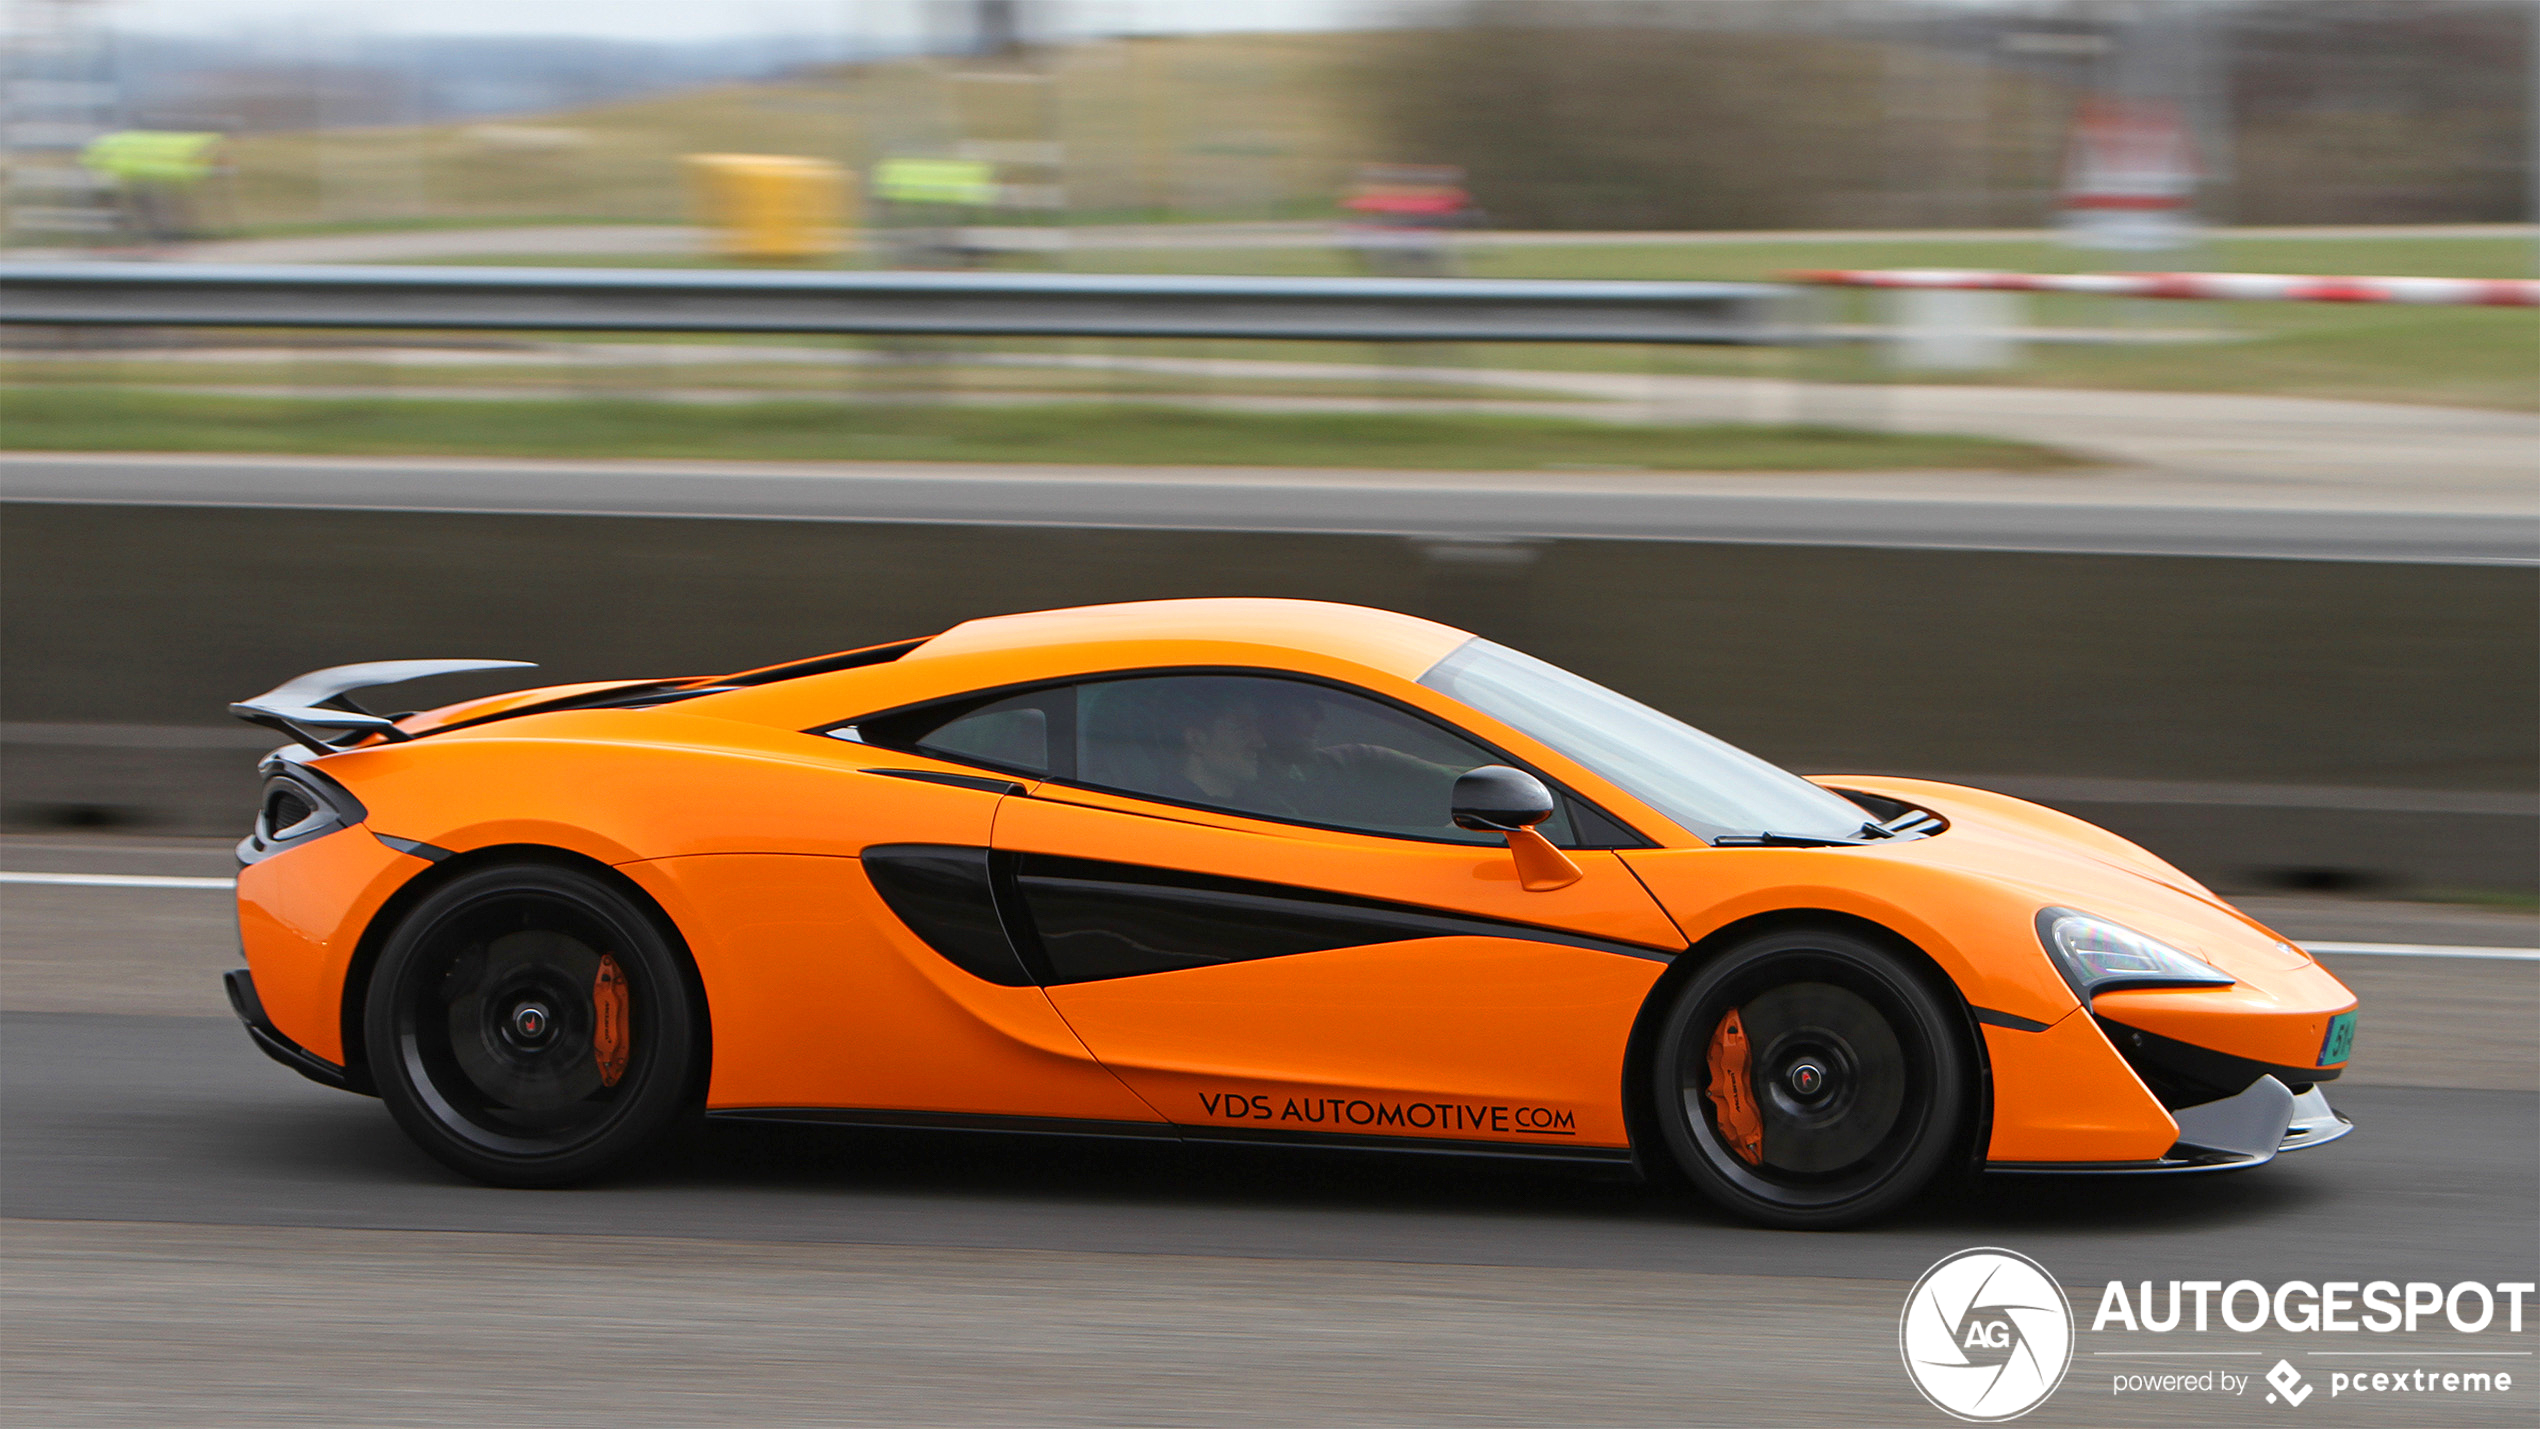 6 Reasons Why Your Next Car Should Be an Exotic Car